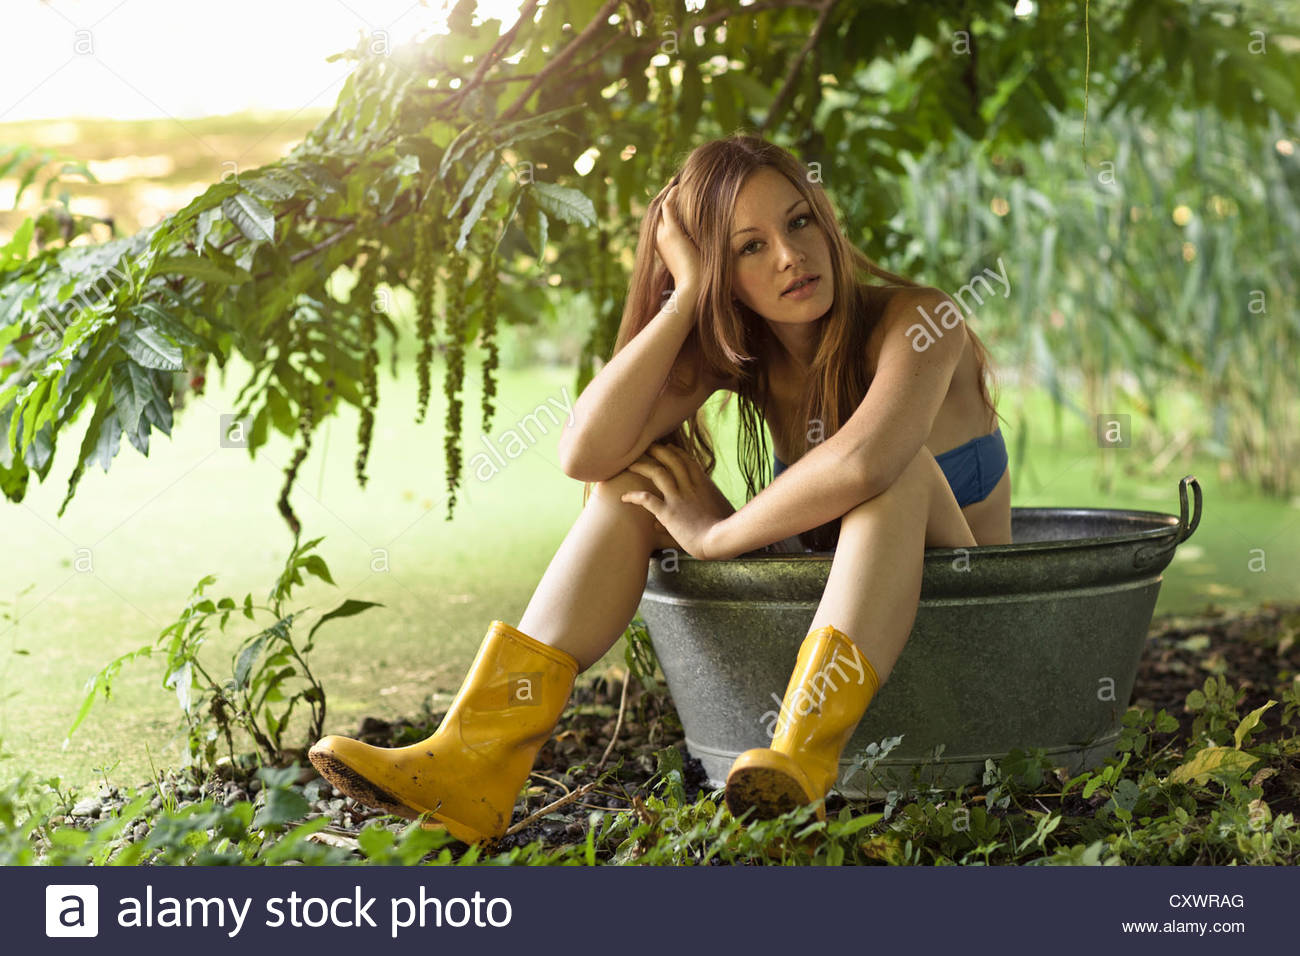 woman sitting in bucket in garden stock photo 50968920 alamy. Black Bedroom Furniture Sets. Home Design Ideas